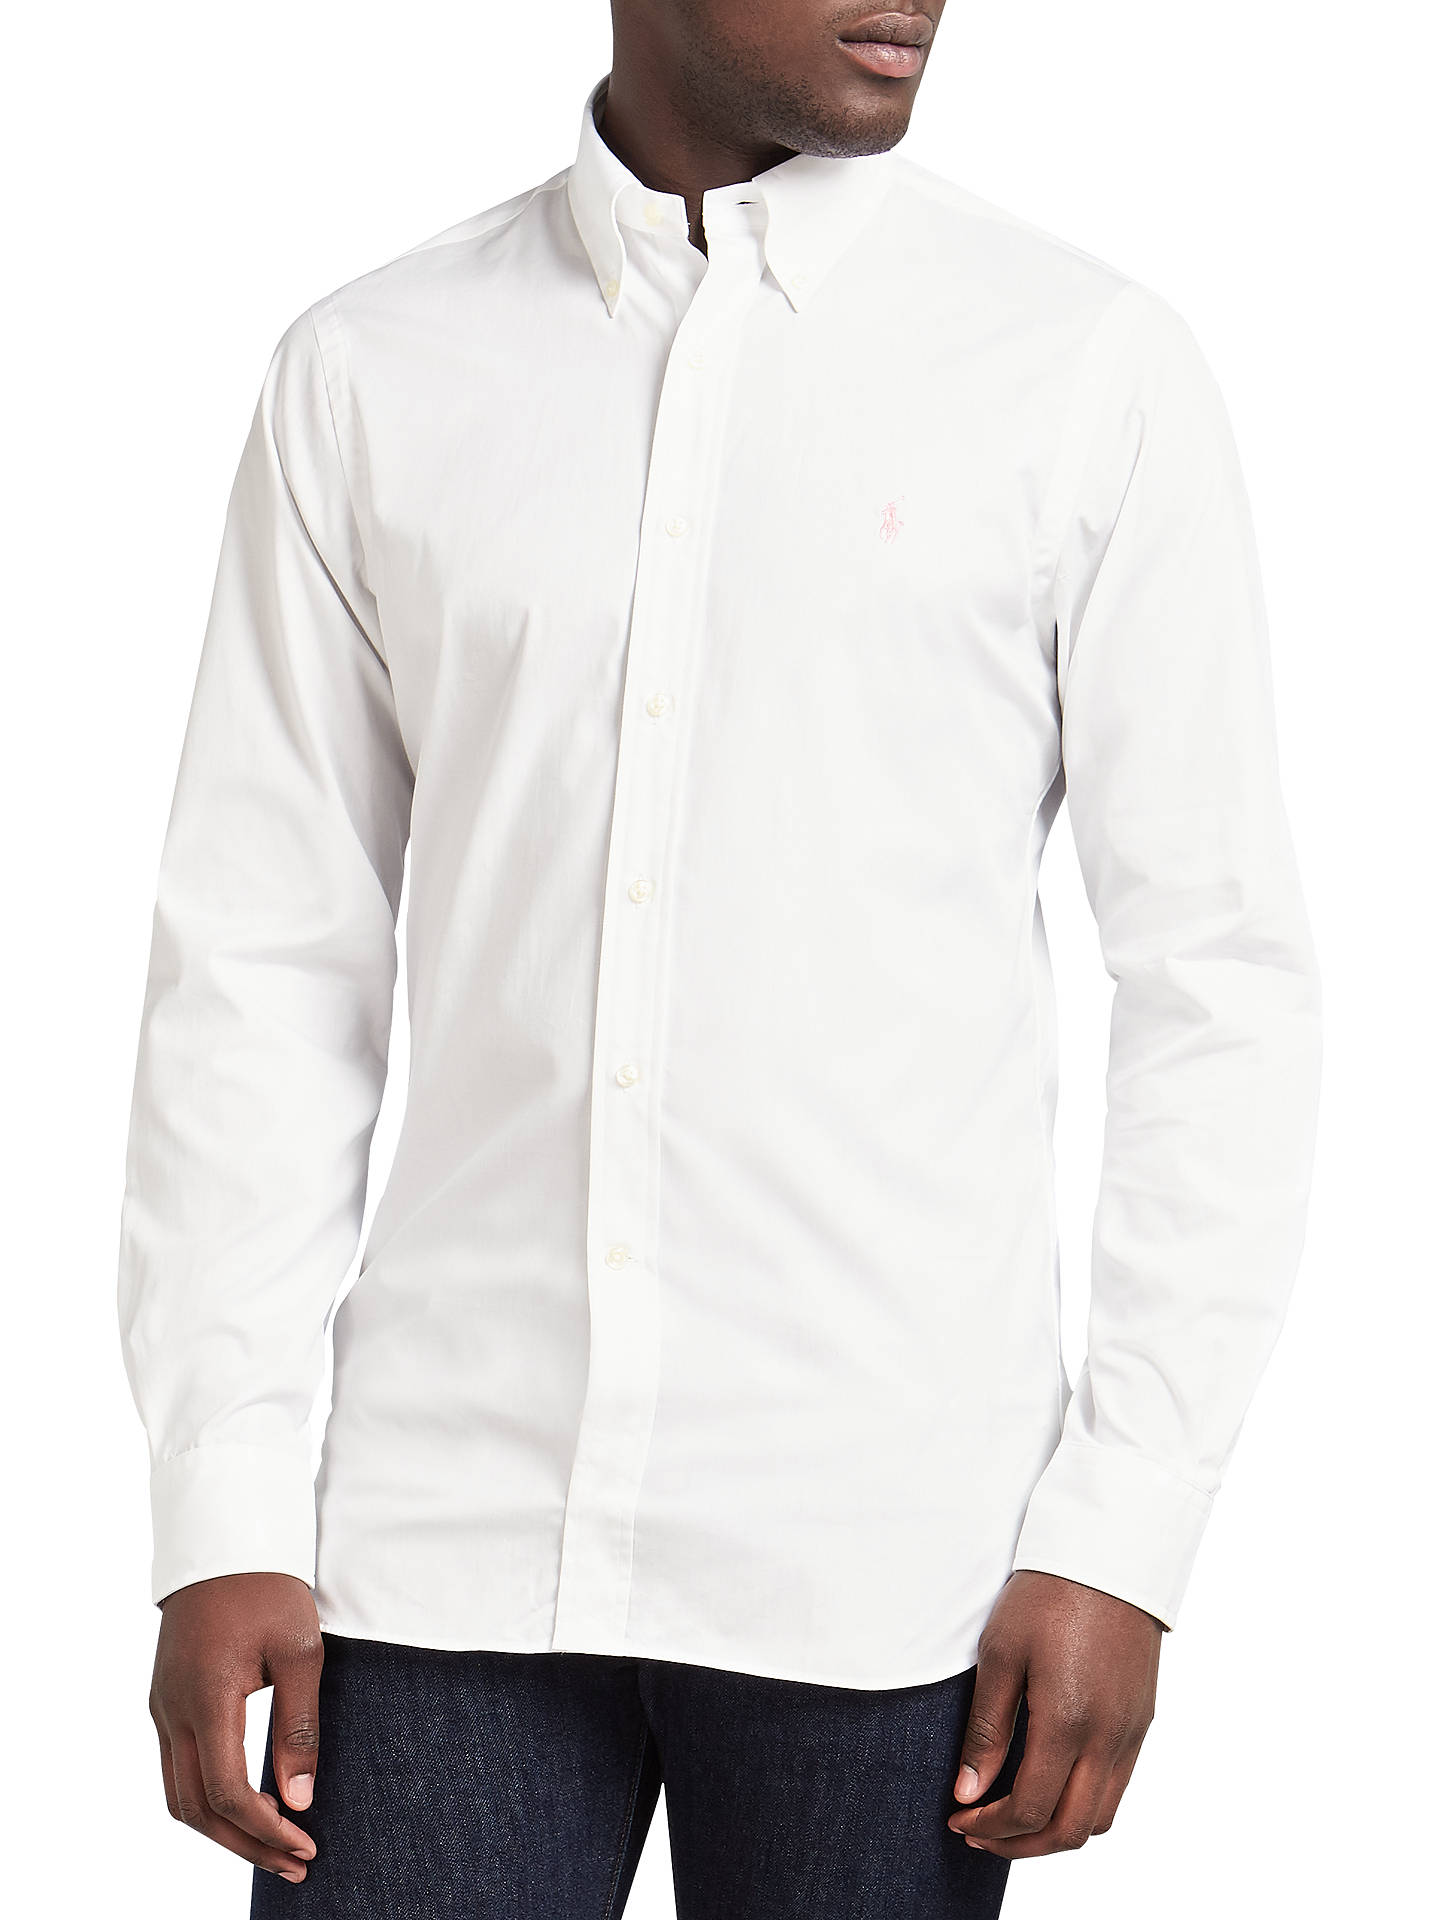 b0119eb30 Polo Ralph Lauren Slim Fit Cotton Poplin Shirt at John Lewis   Partners